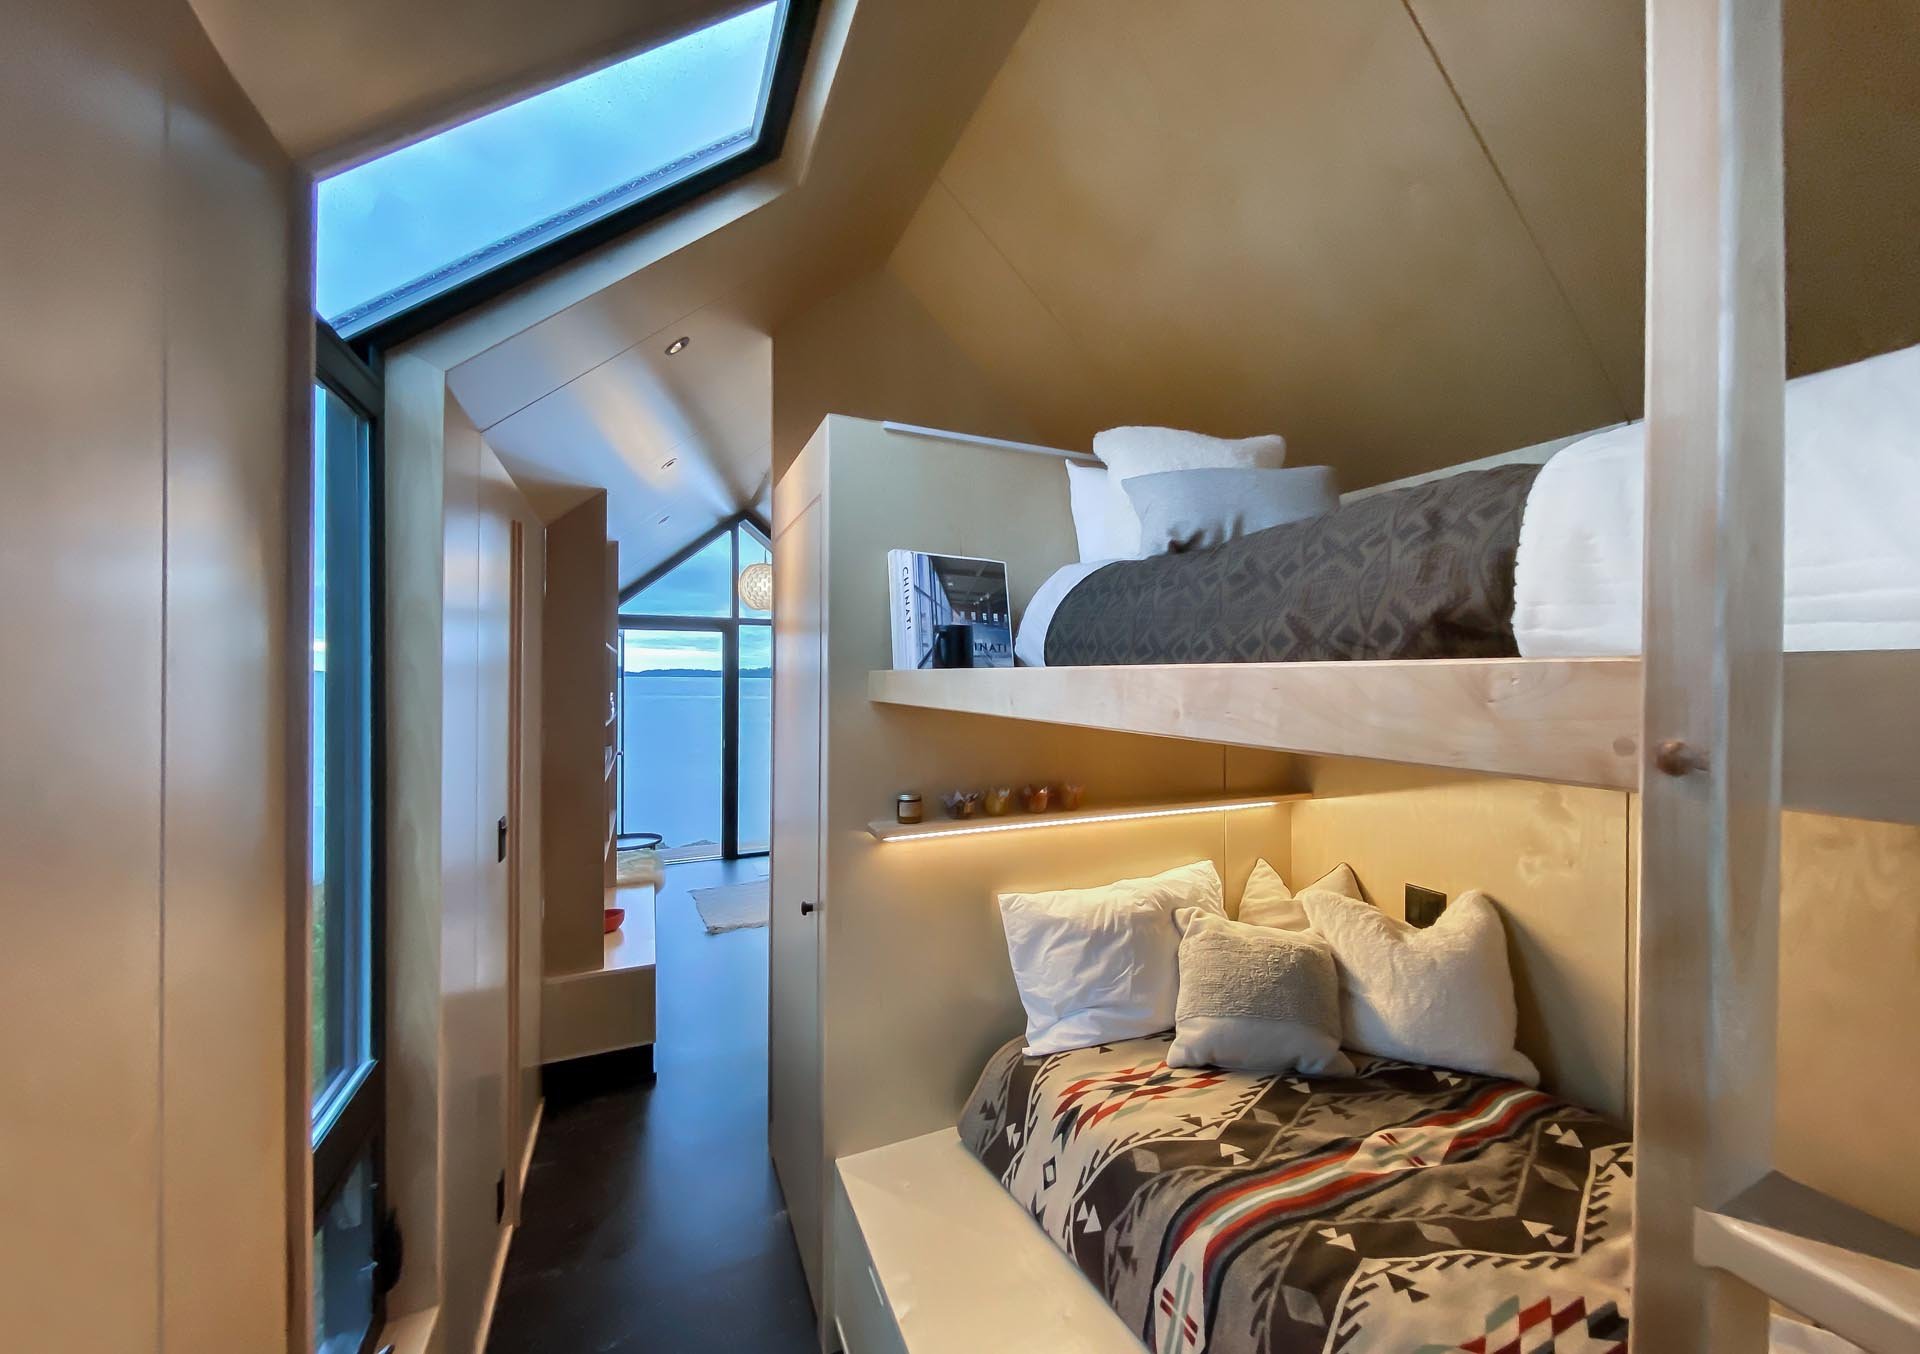 A tiny house with bunk beds that don't feel enclosed due to the gabled ceiling.